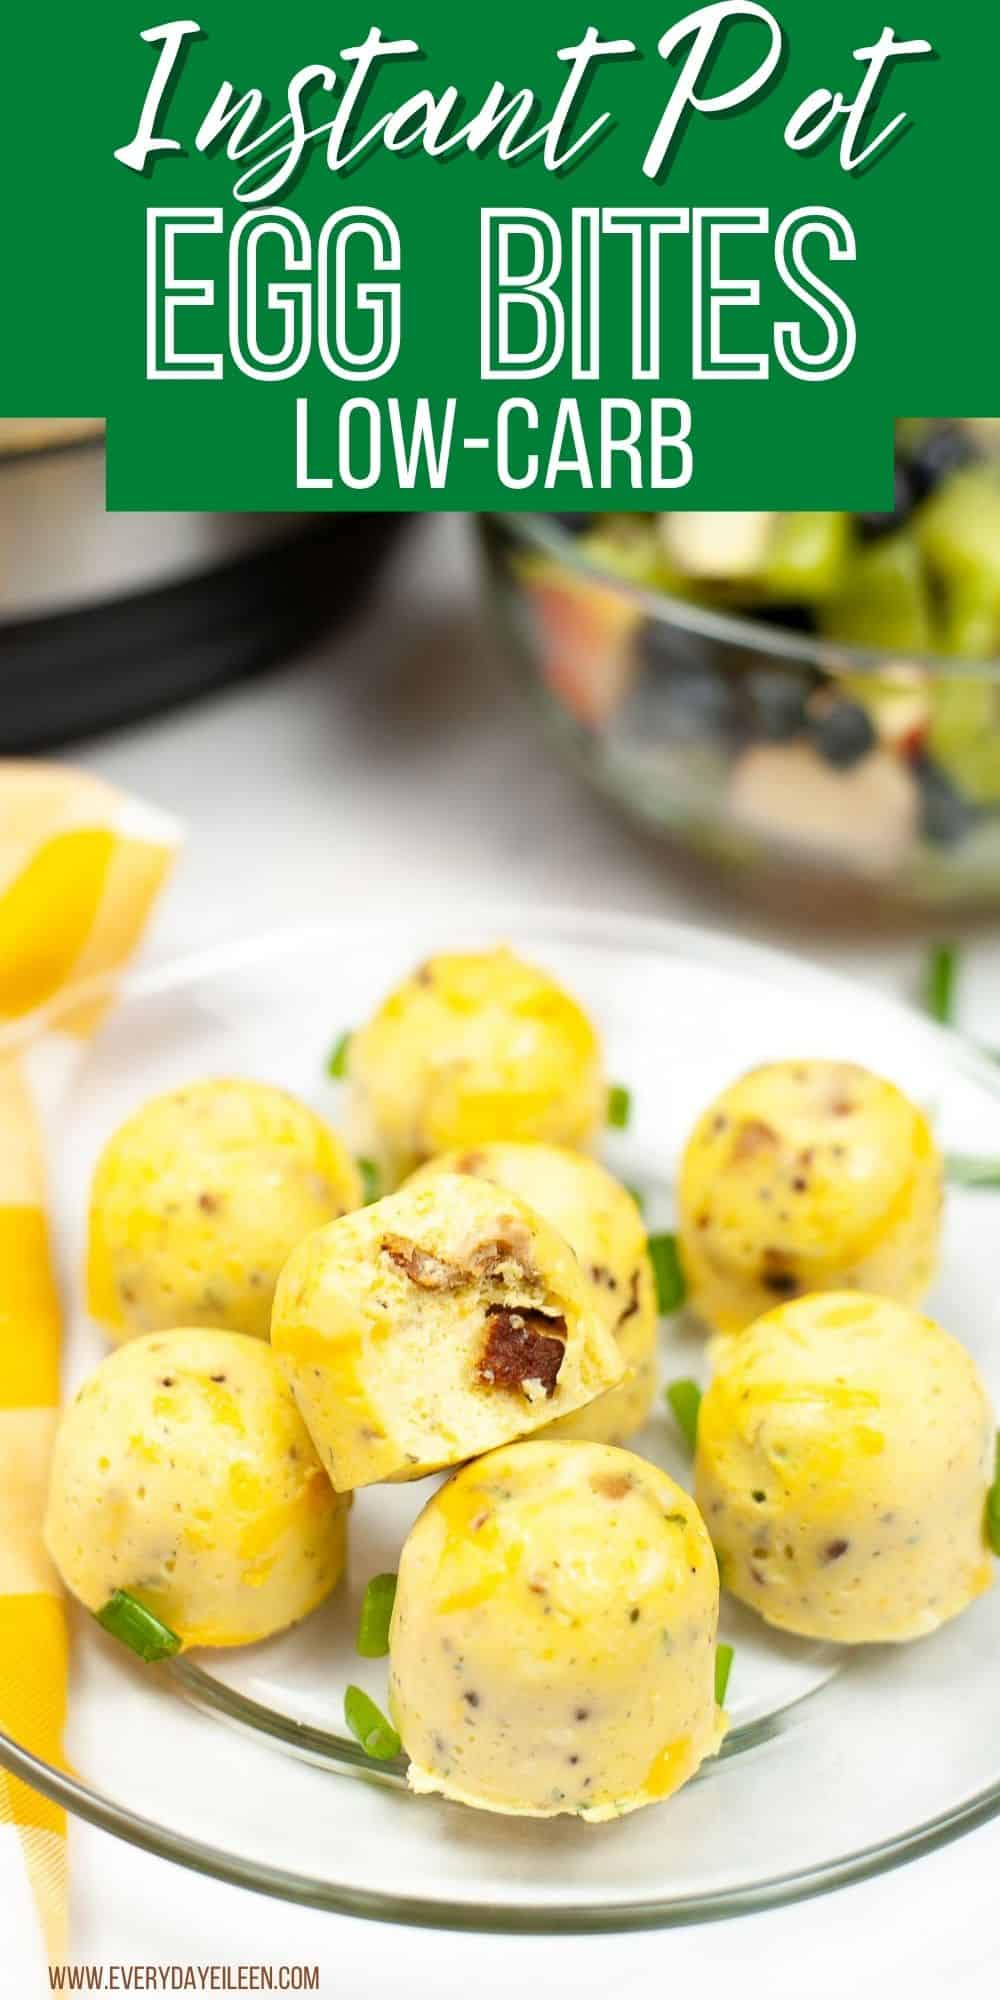 Make Starbucks Sous Vide Egg Bites at home in your Instant Pot any time you want to enjoy a great breakfast. Use silicone molds to form the bites. The eggs are loaded with crispy bacon and cheese. You can also add in cottage cheese. We include variations to make different numerous different combinations. #eggbites #instantpotrecipes #everydayeileen via @/everydayeileen/